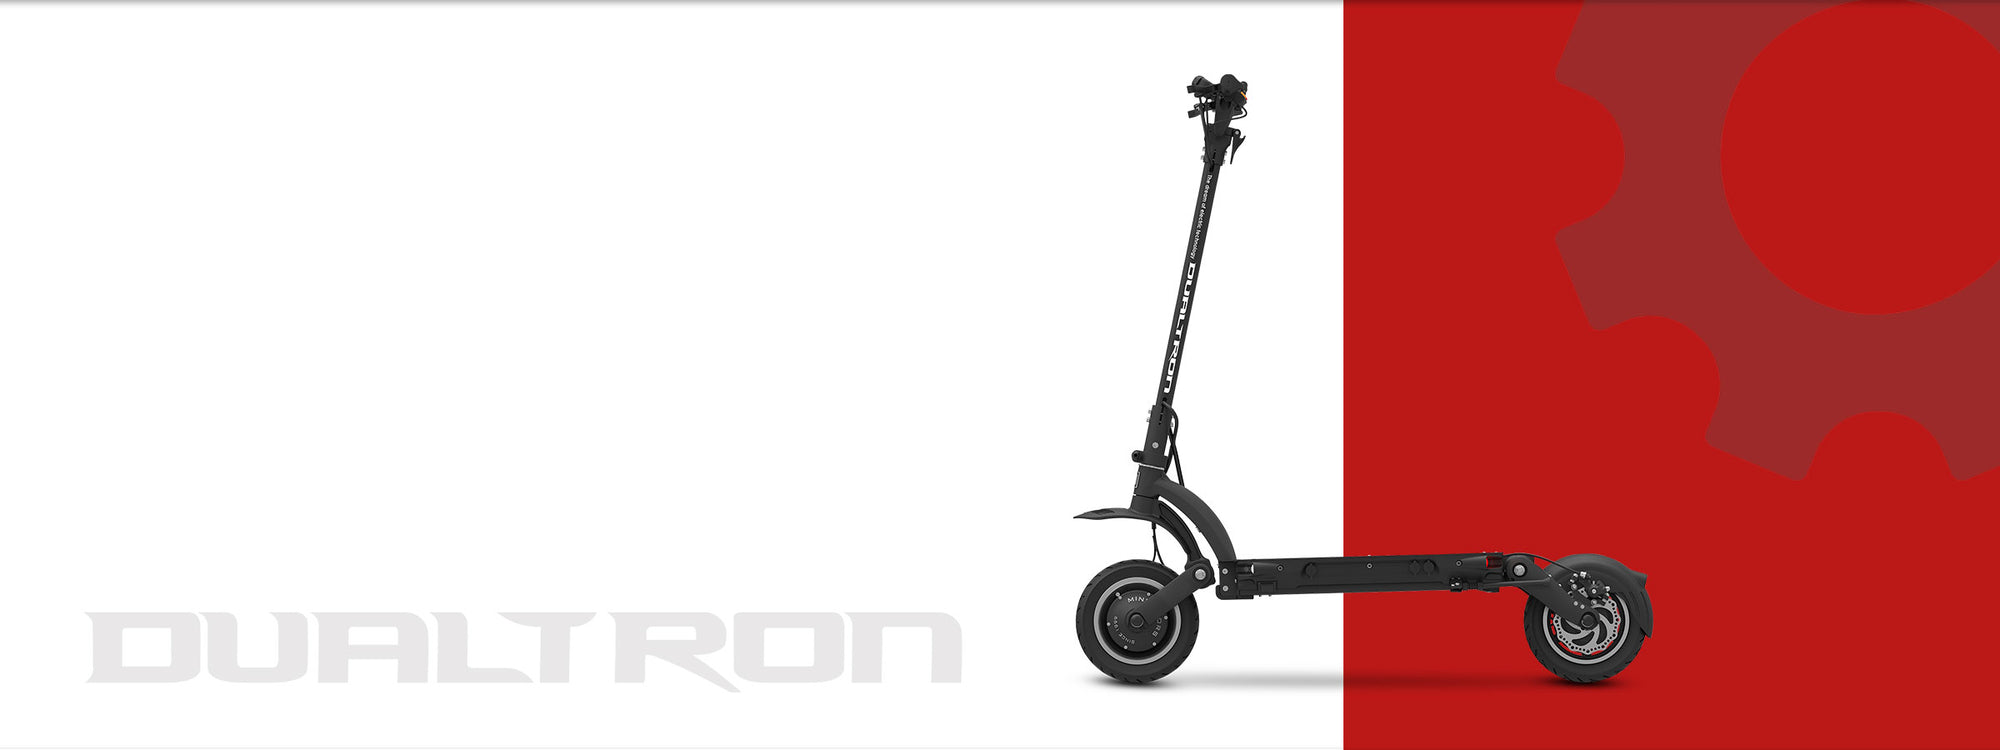 Dualtron Eagle Pro best beginner electric scooter